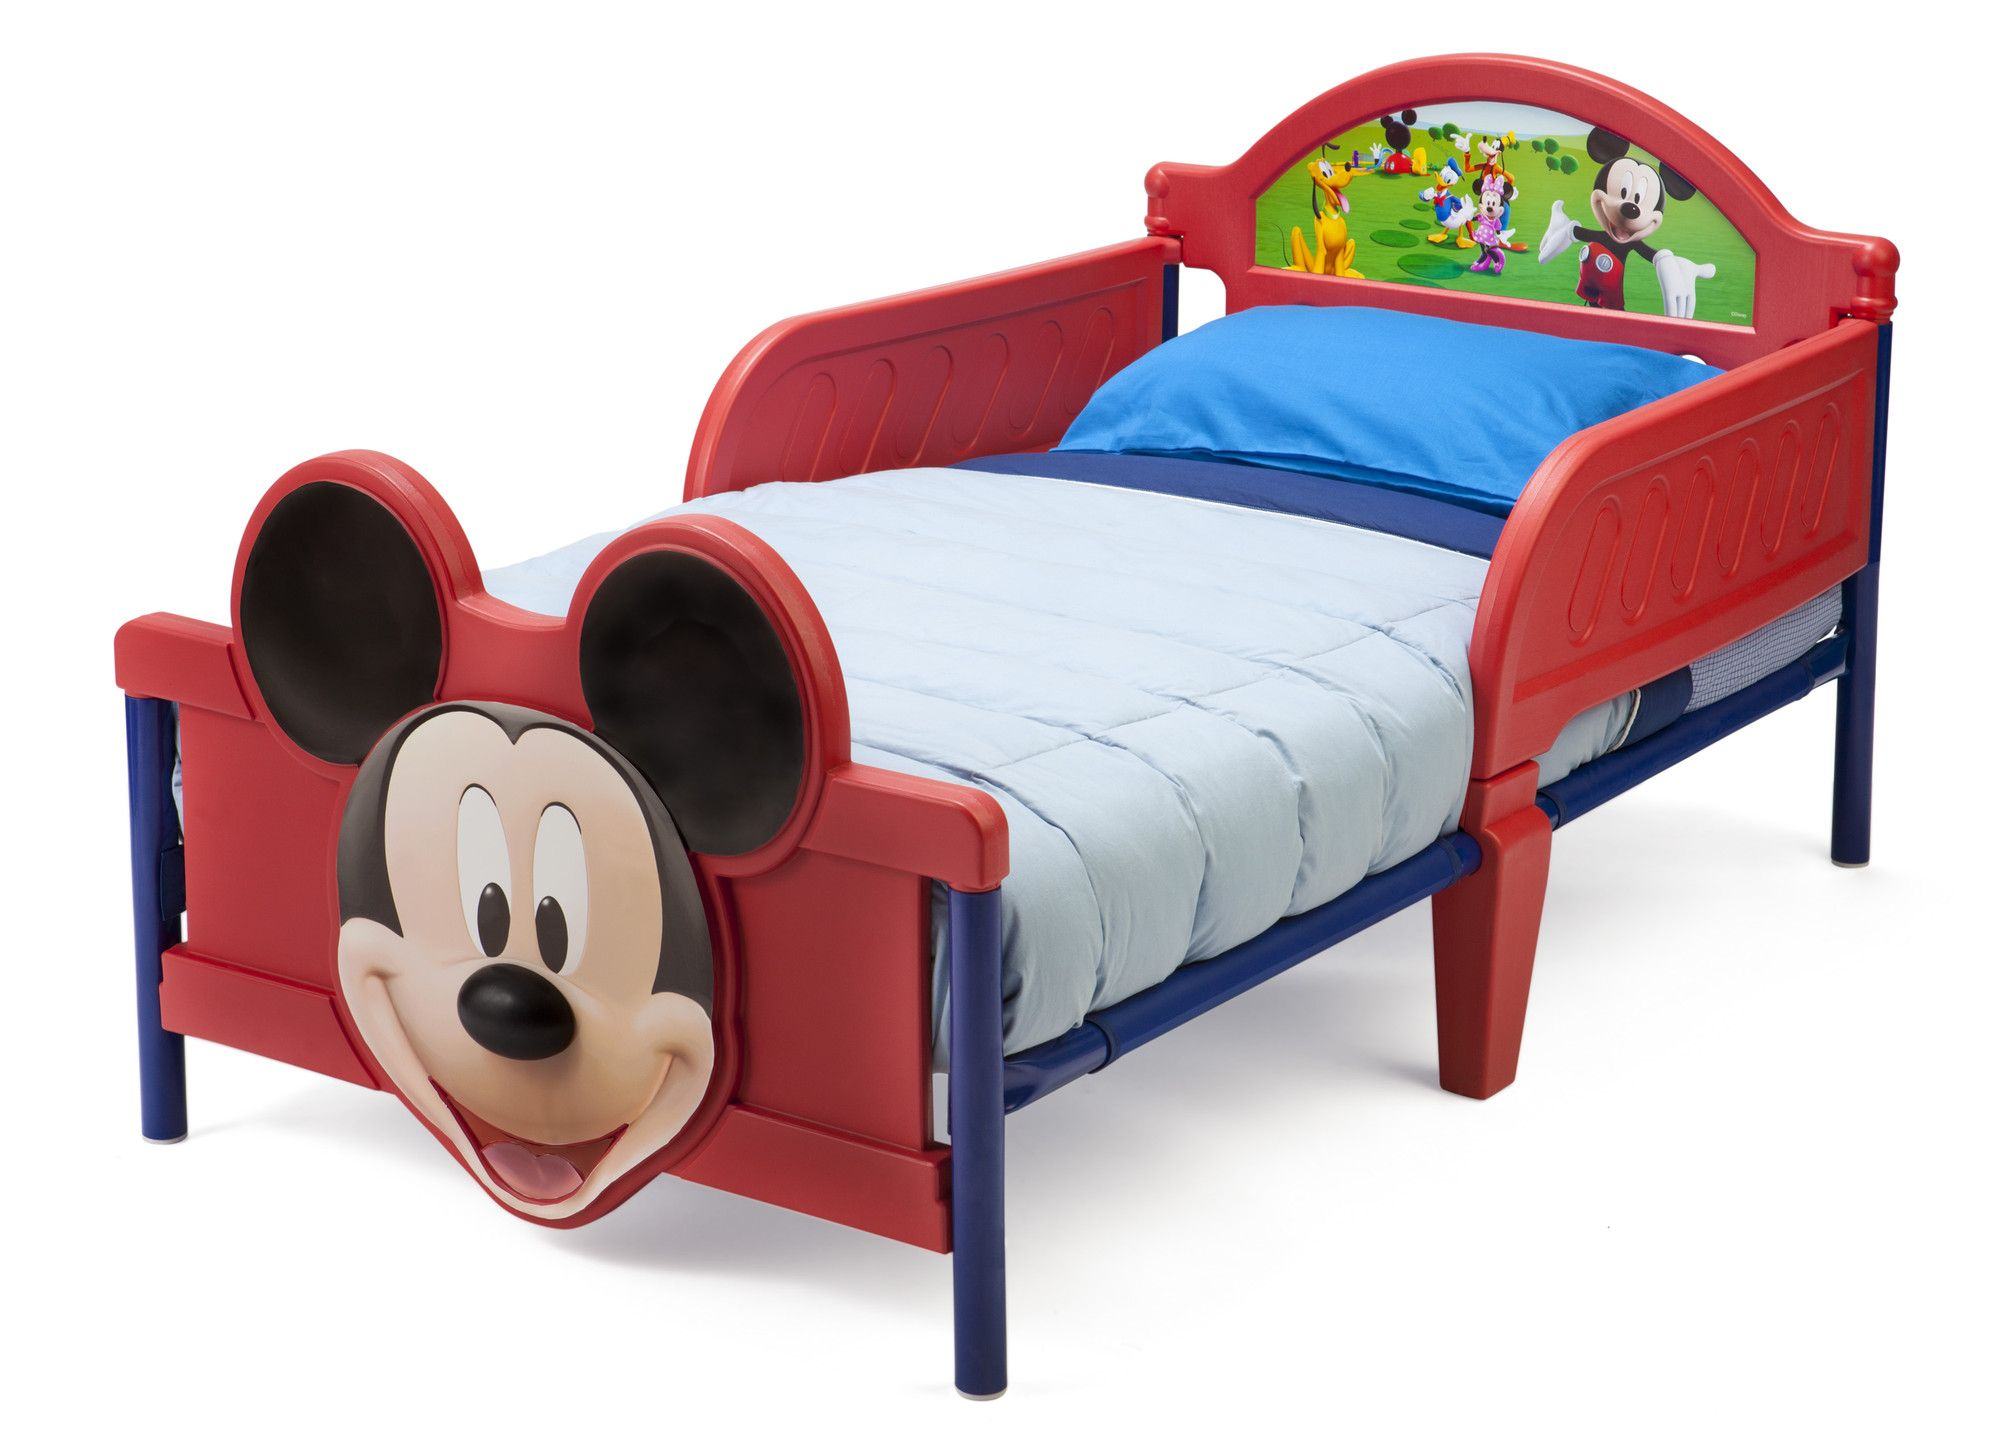 Toddler Bed For Girl Mickey Mouse Toddler Bed For Boy Or Girl Trendy Toddler